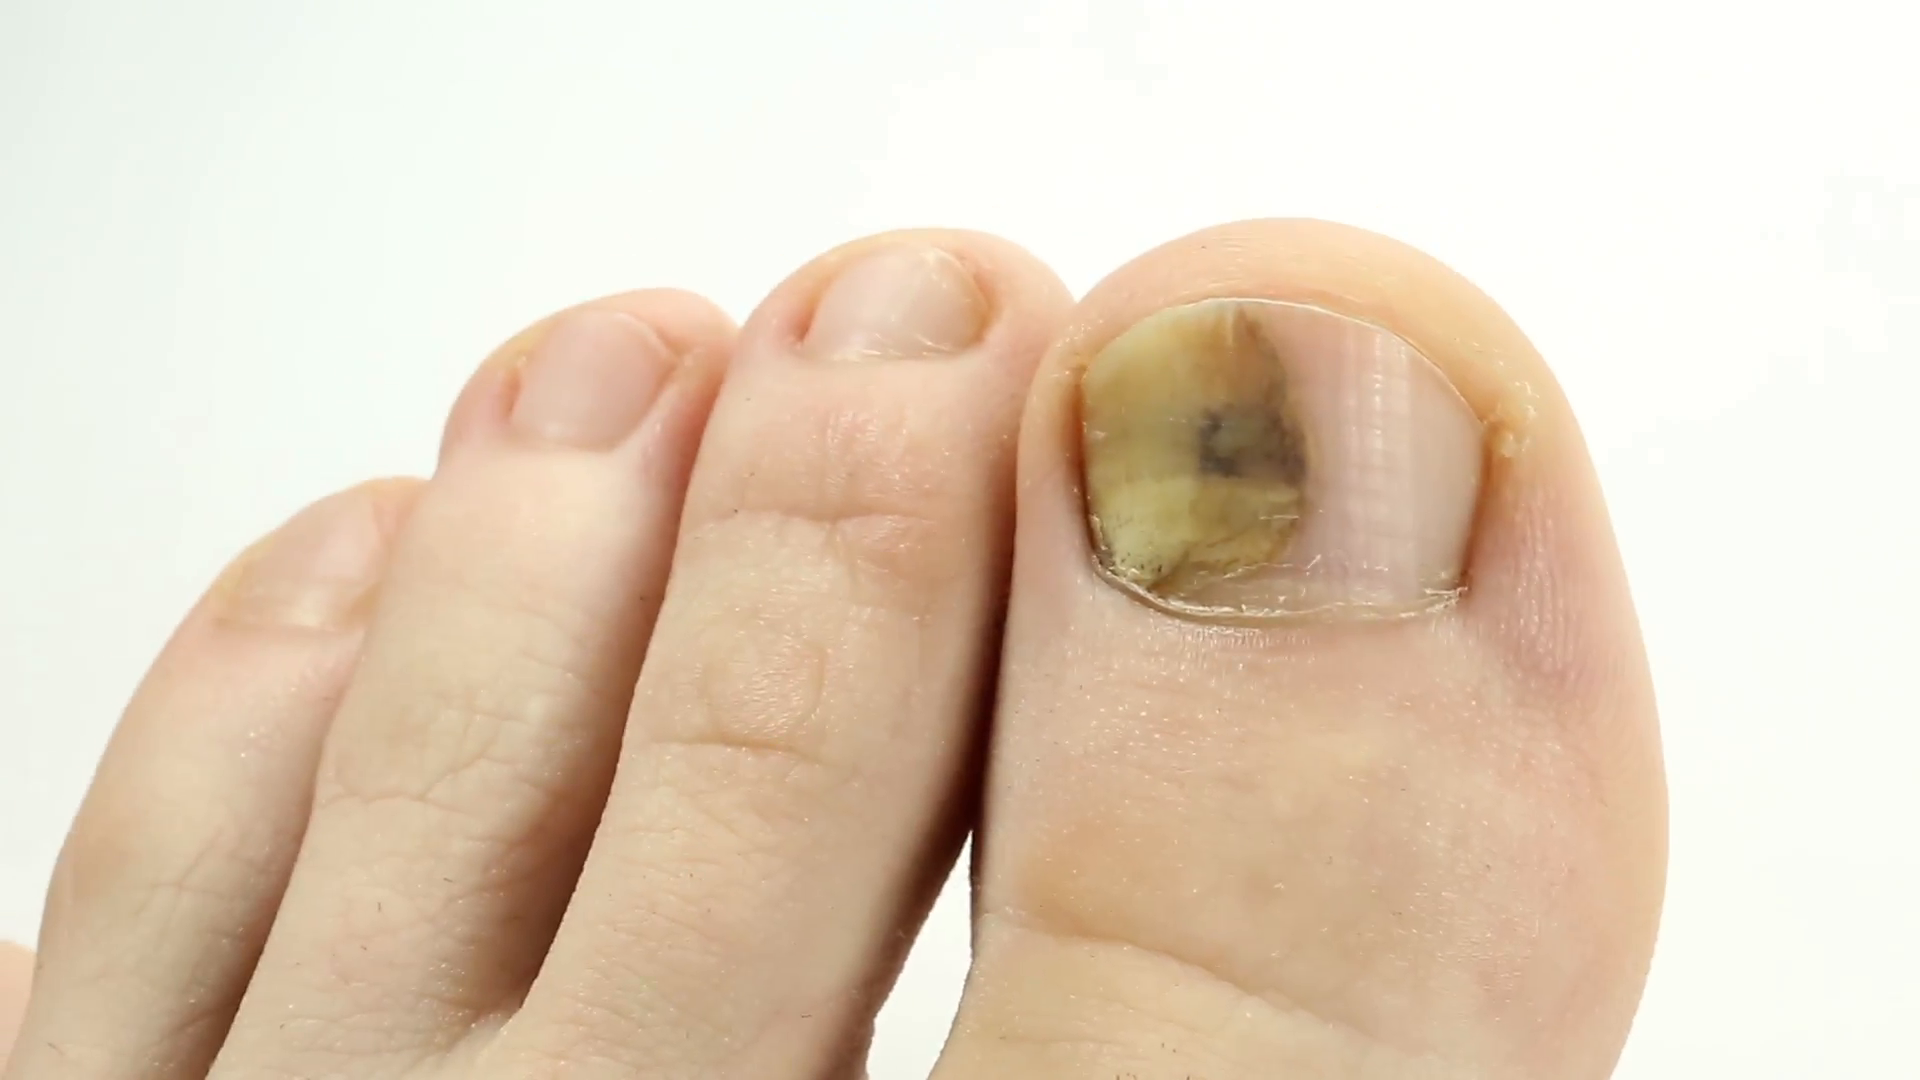 Fungi Toes. Fungus of big toe. Bruise under the nail of big toe. Injury to  nail. Sick nail. Subungual hematoma. Separation of the nail from PlusPng.com  - Big Toe PNG